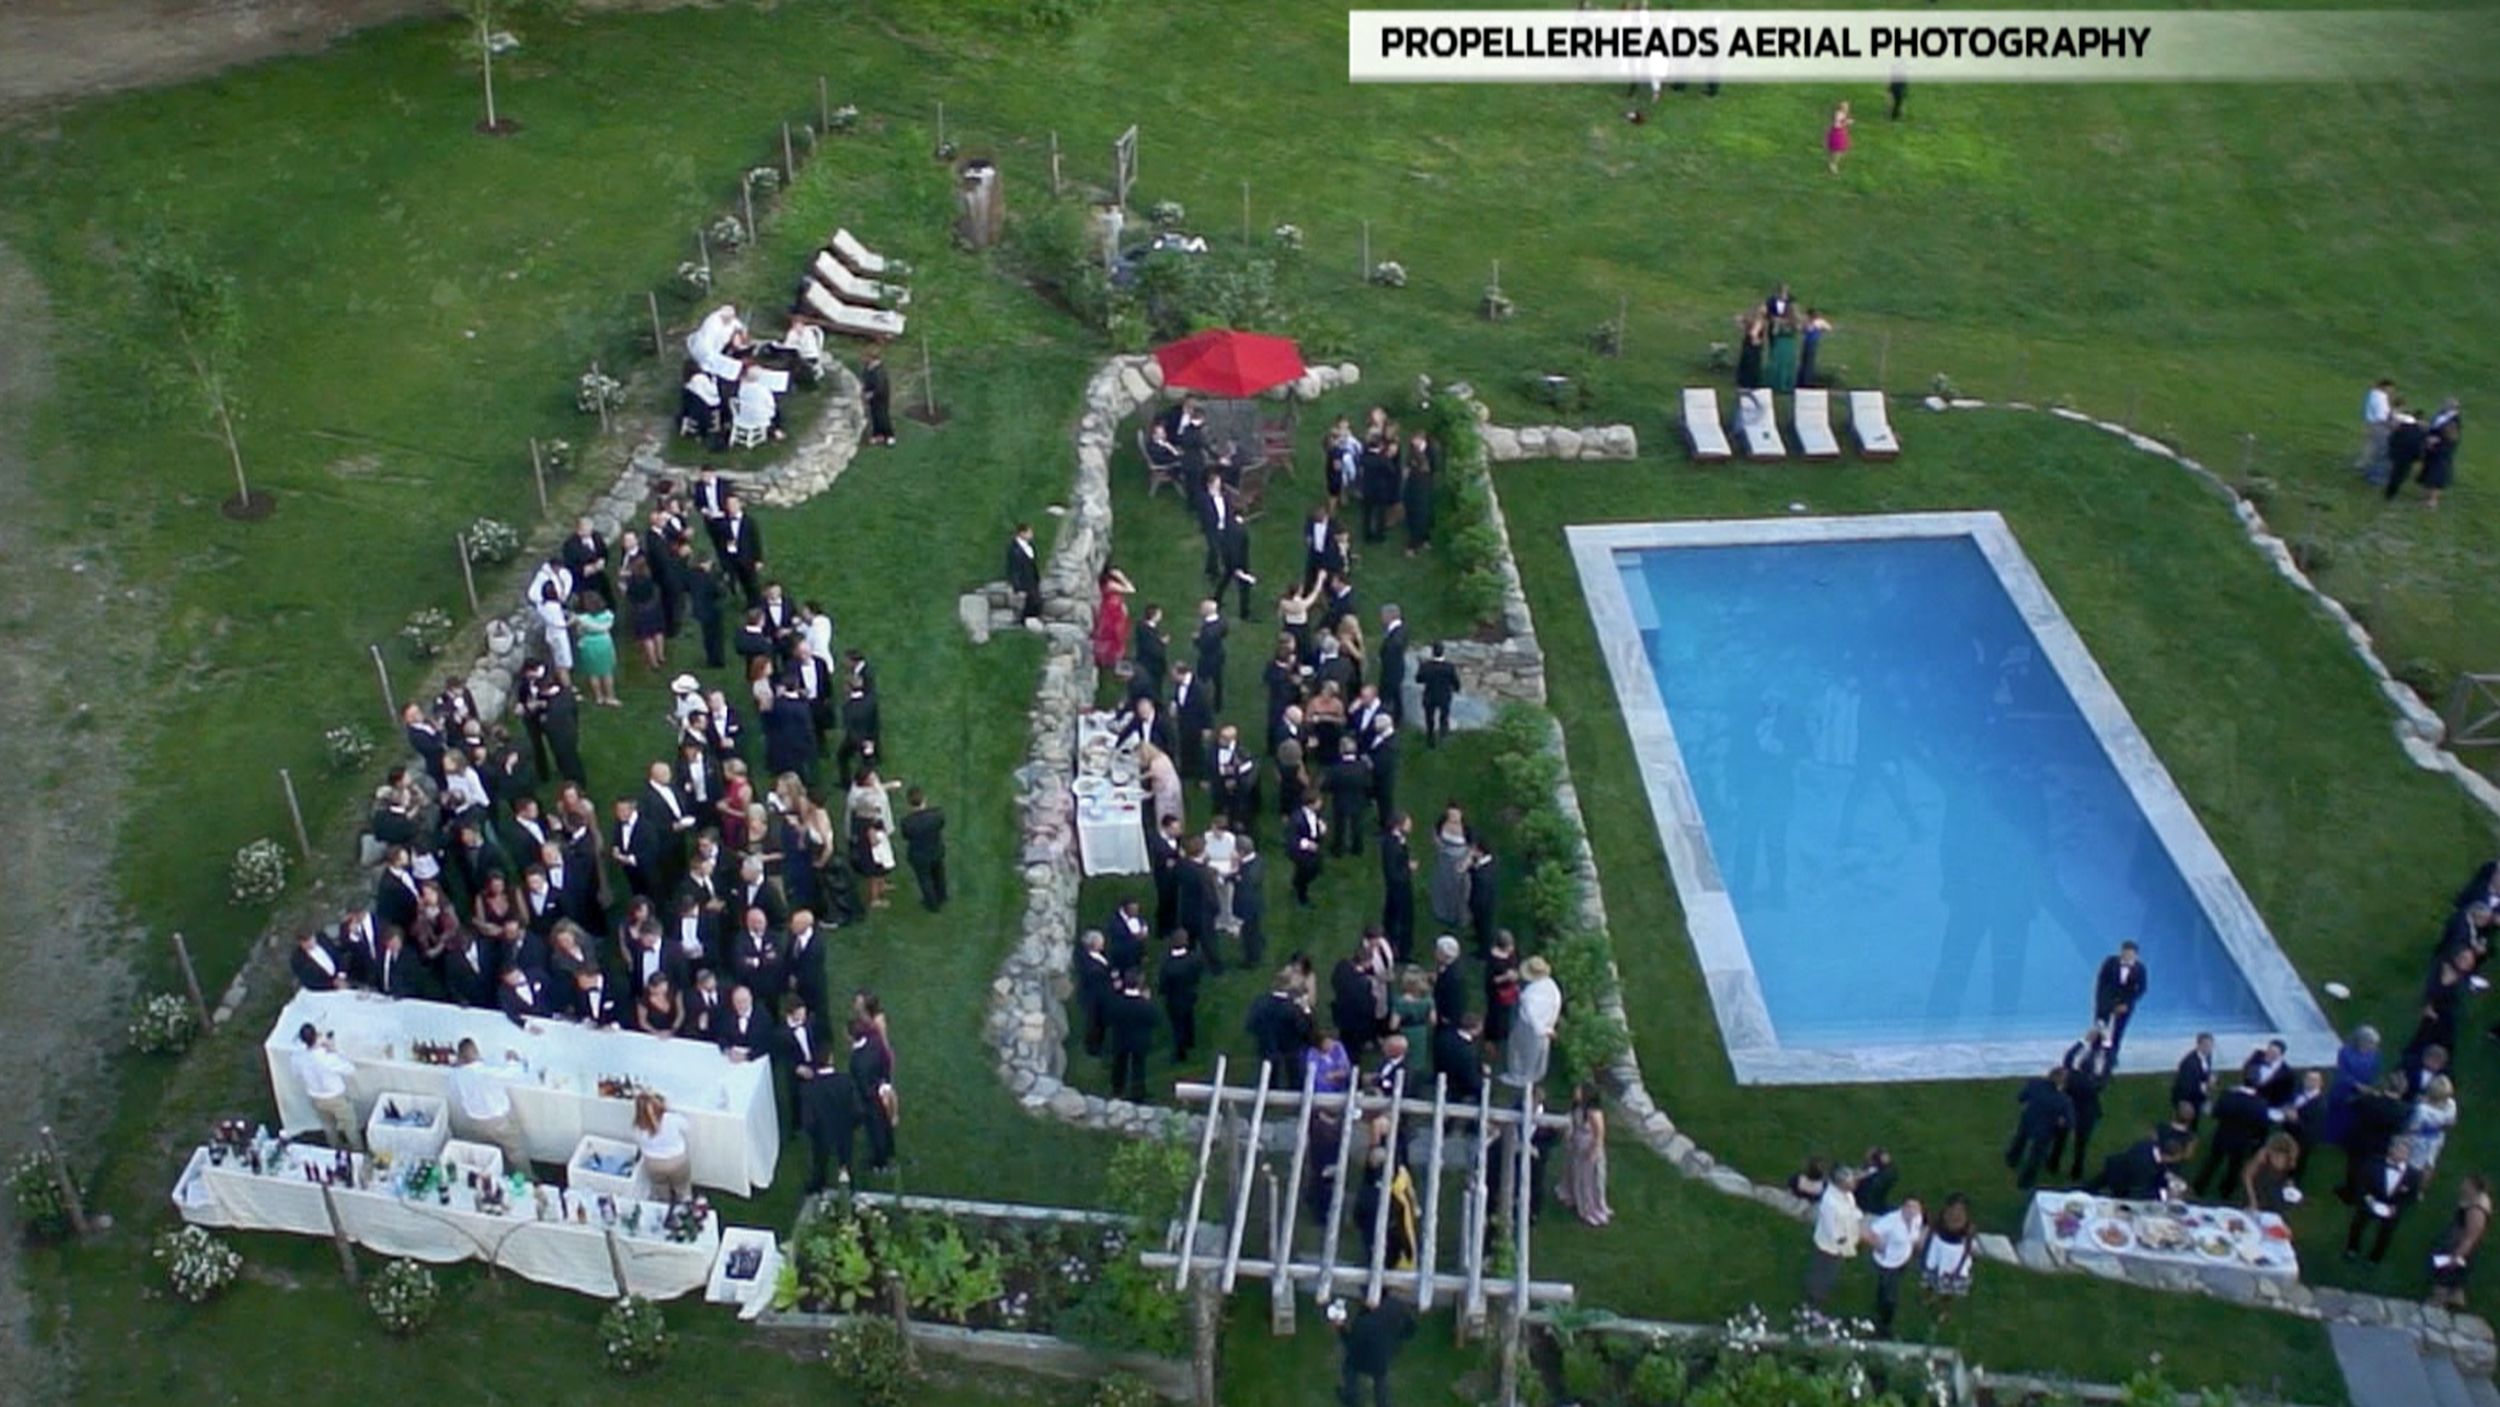 Drones take to the skies over weddings in search of for Drone wedding photos